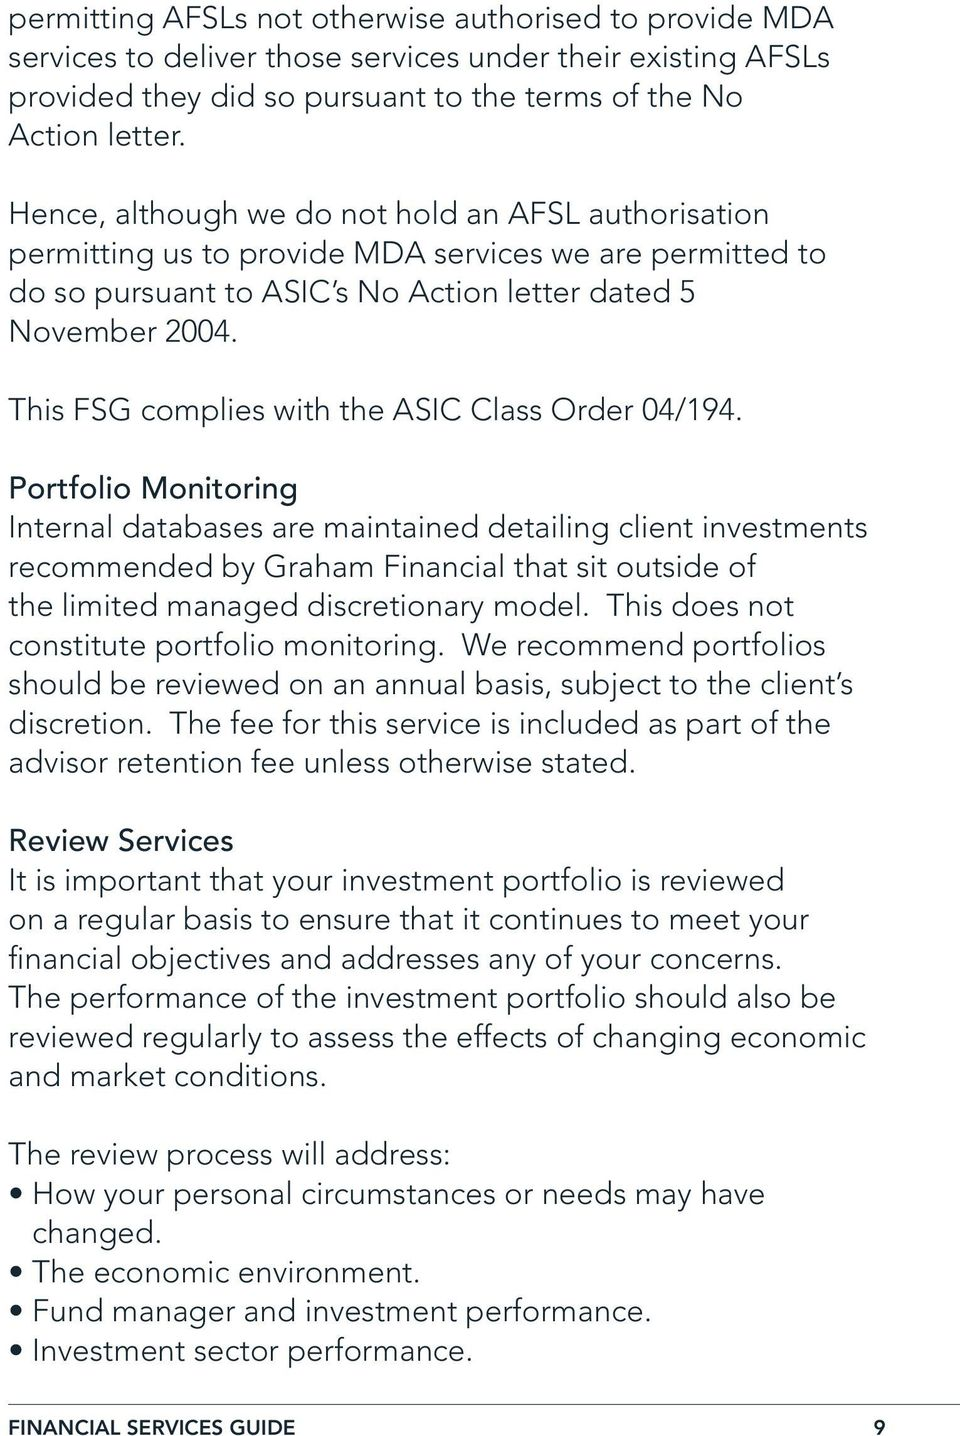 This FSG complies with the ASIC Class Order 04/194.